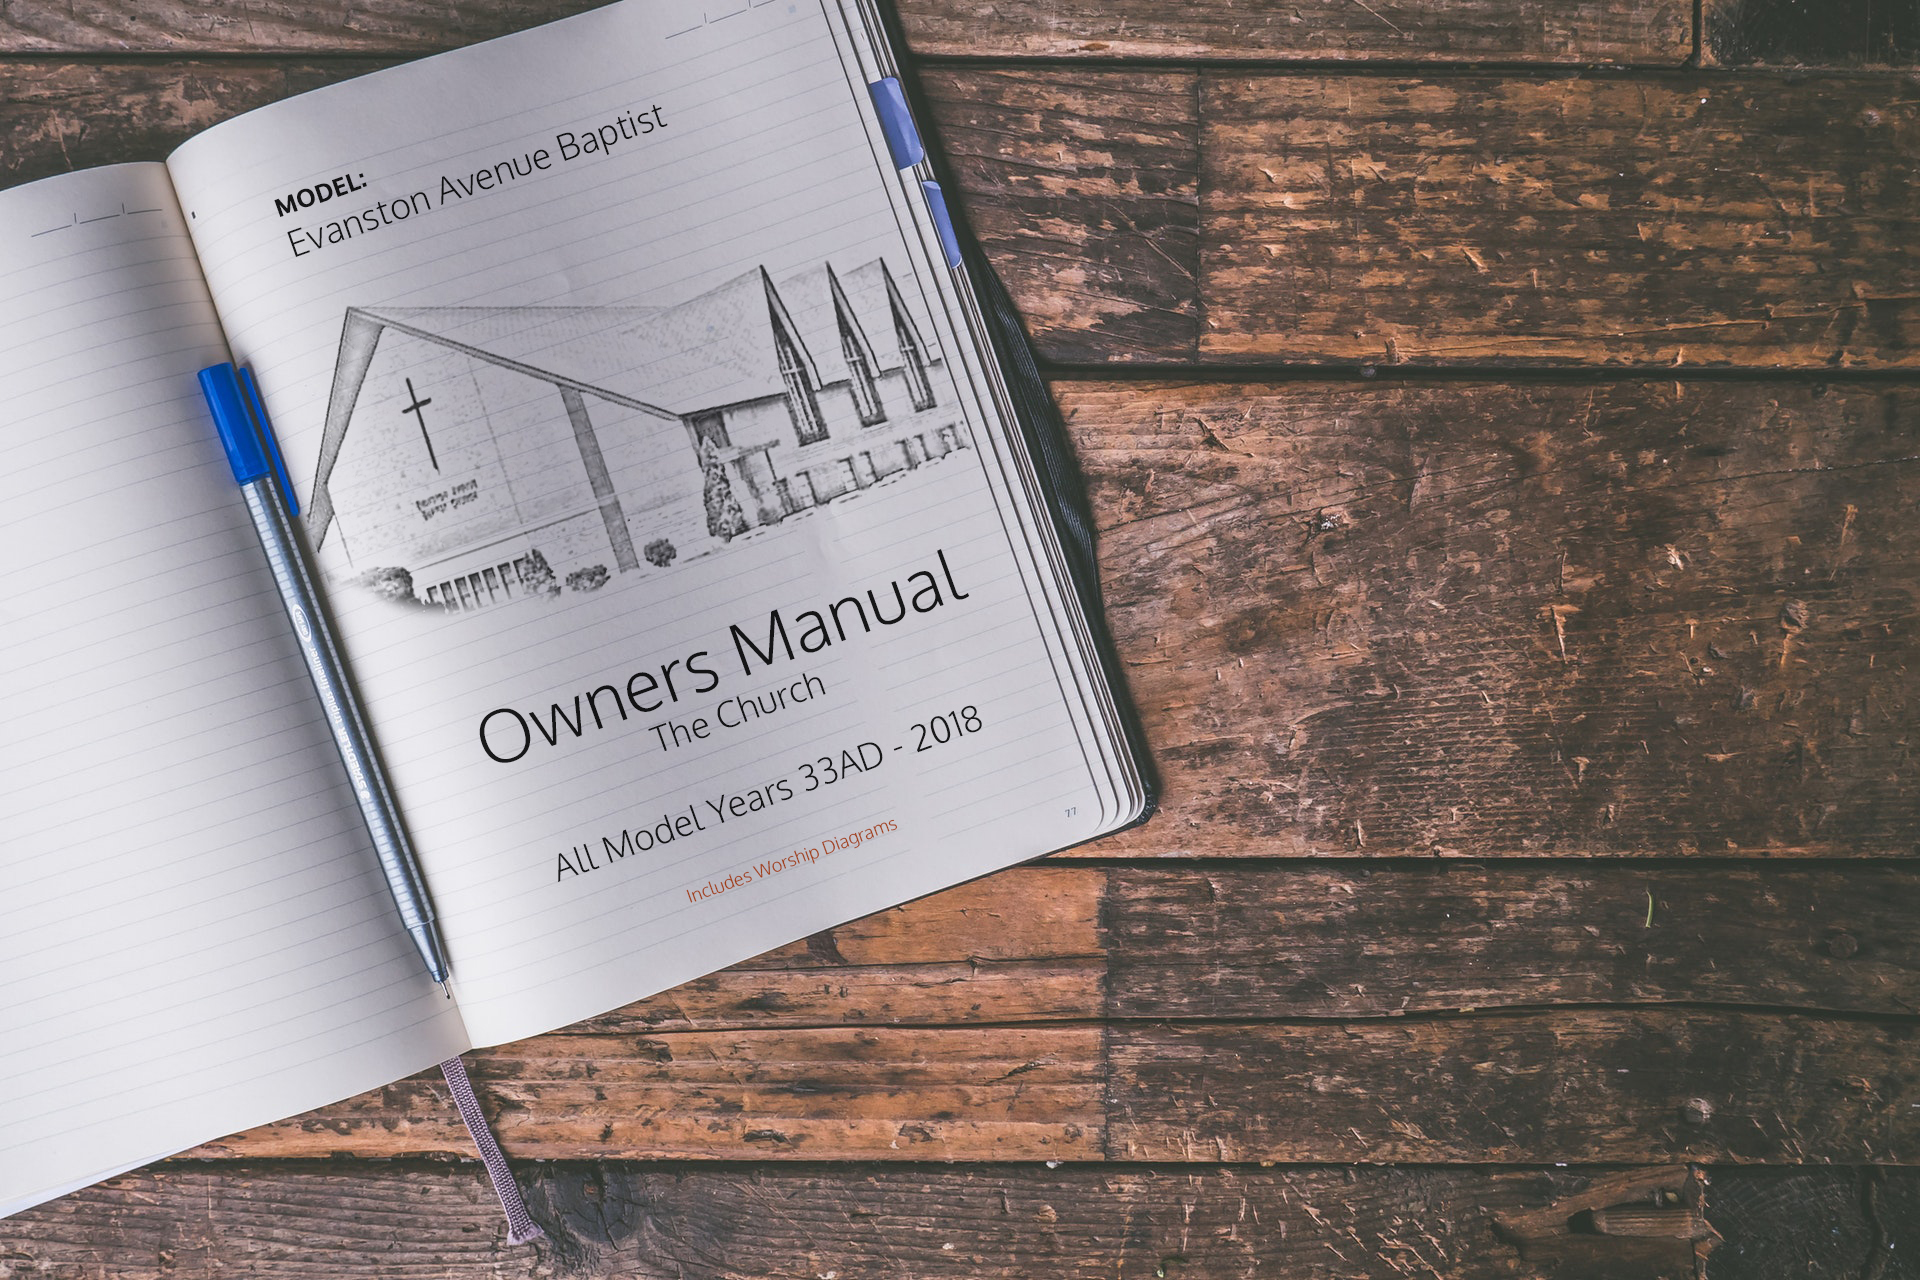 The Owner's Manual - The essential guide for the owners of EABC